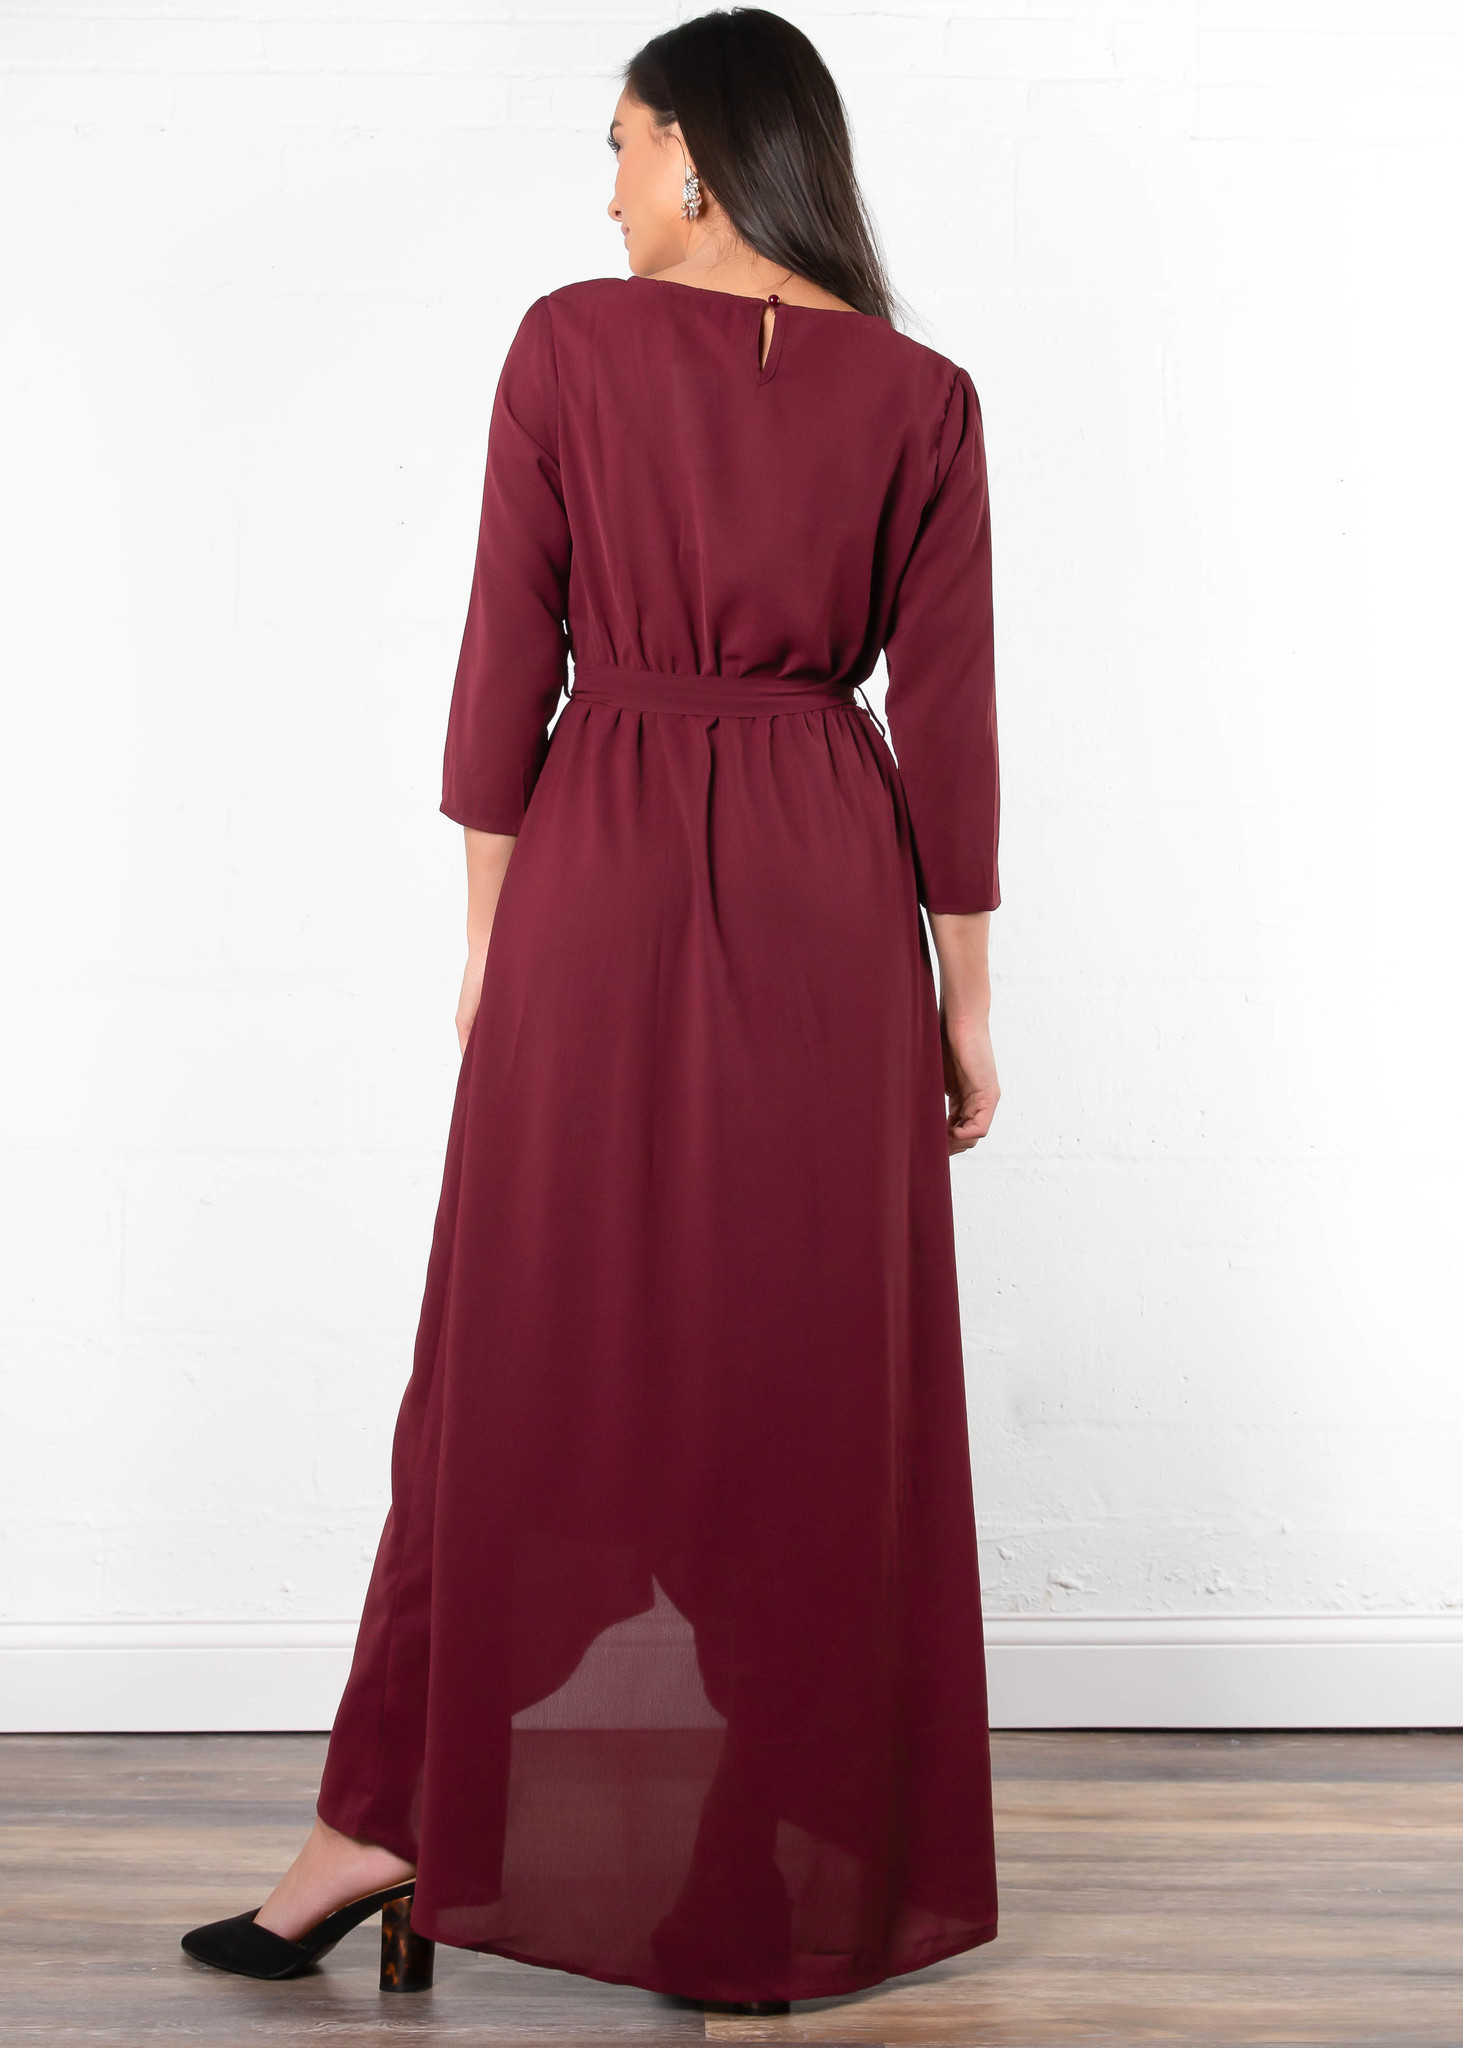 LIKE A LADY MAXI DRESS